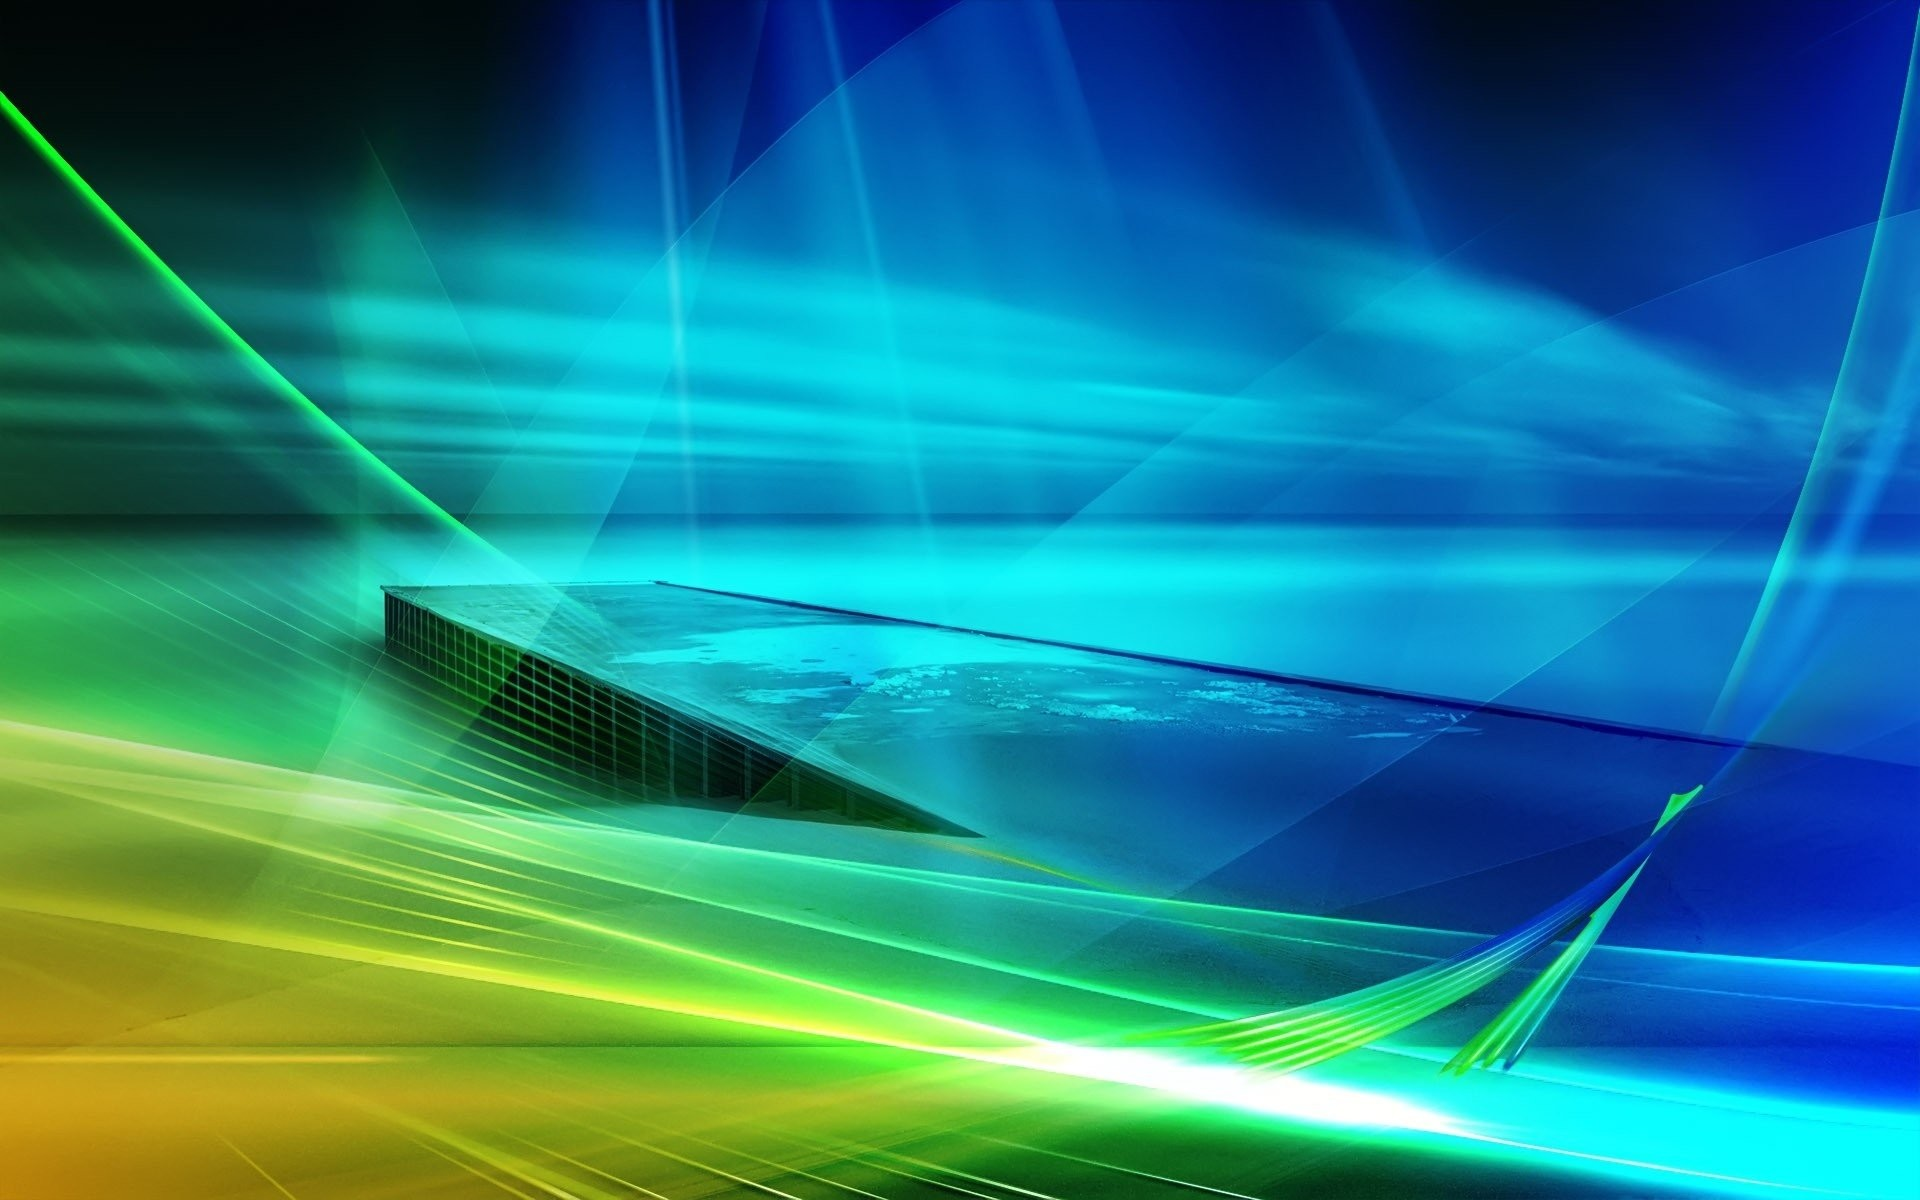 1920x1080 Colorful Widescreen Cool Windows Wallpaper Desktop Images Background Full Screen 1080p 1920A 1080 HD